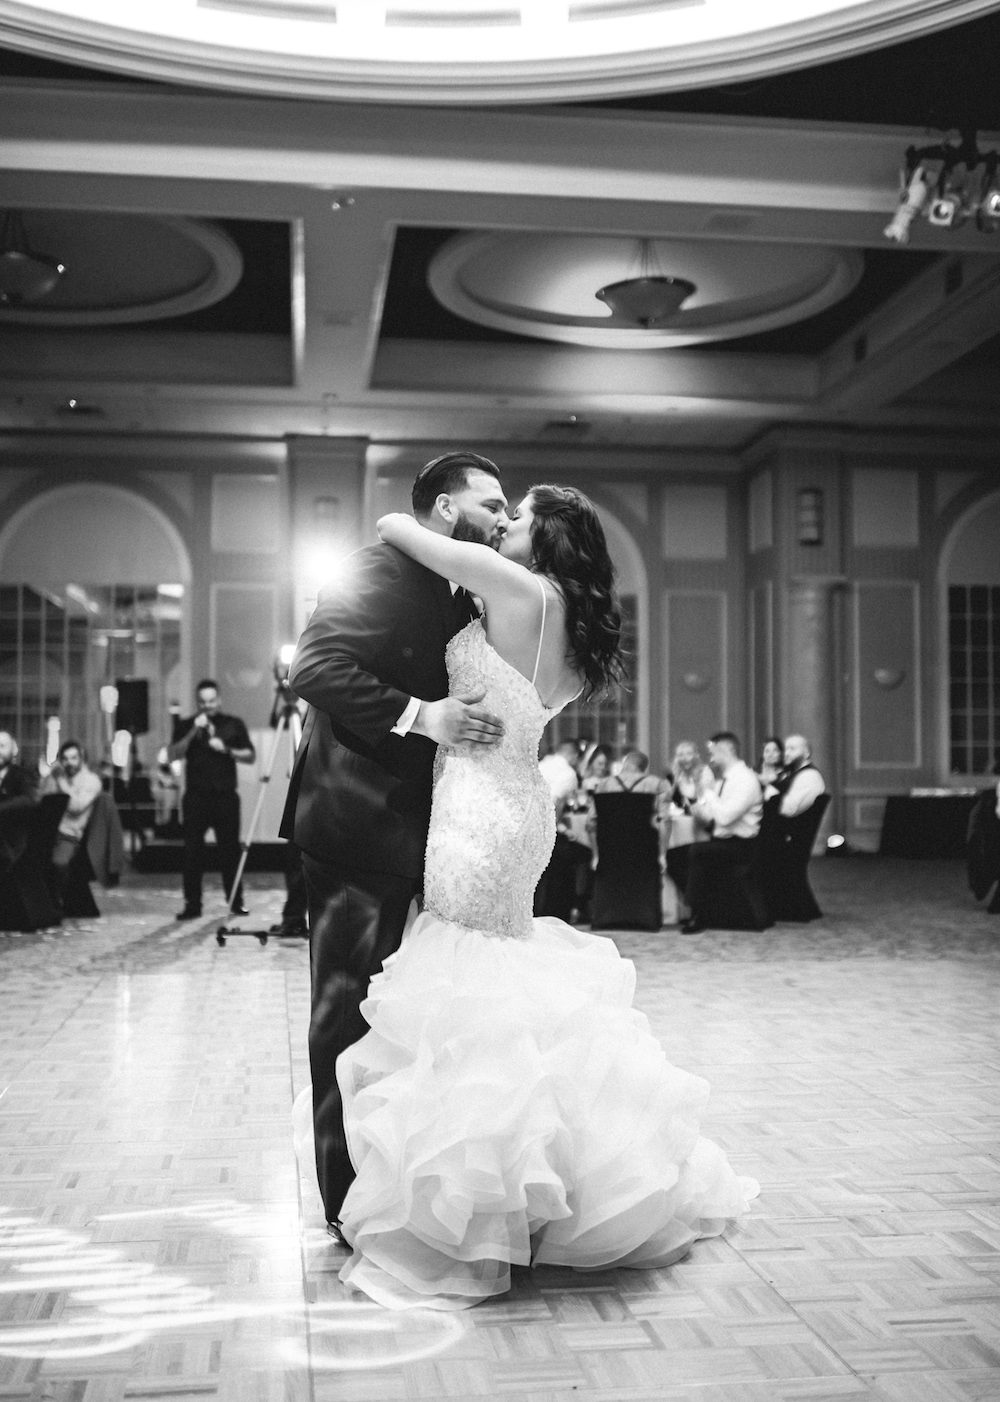 Weddings by Matt Steeves Photography The Chase Center Wilmington Ballroom Reception 9.jpg